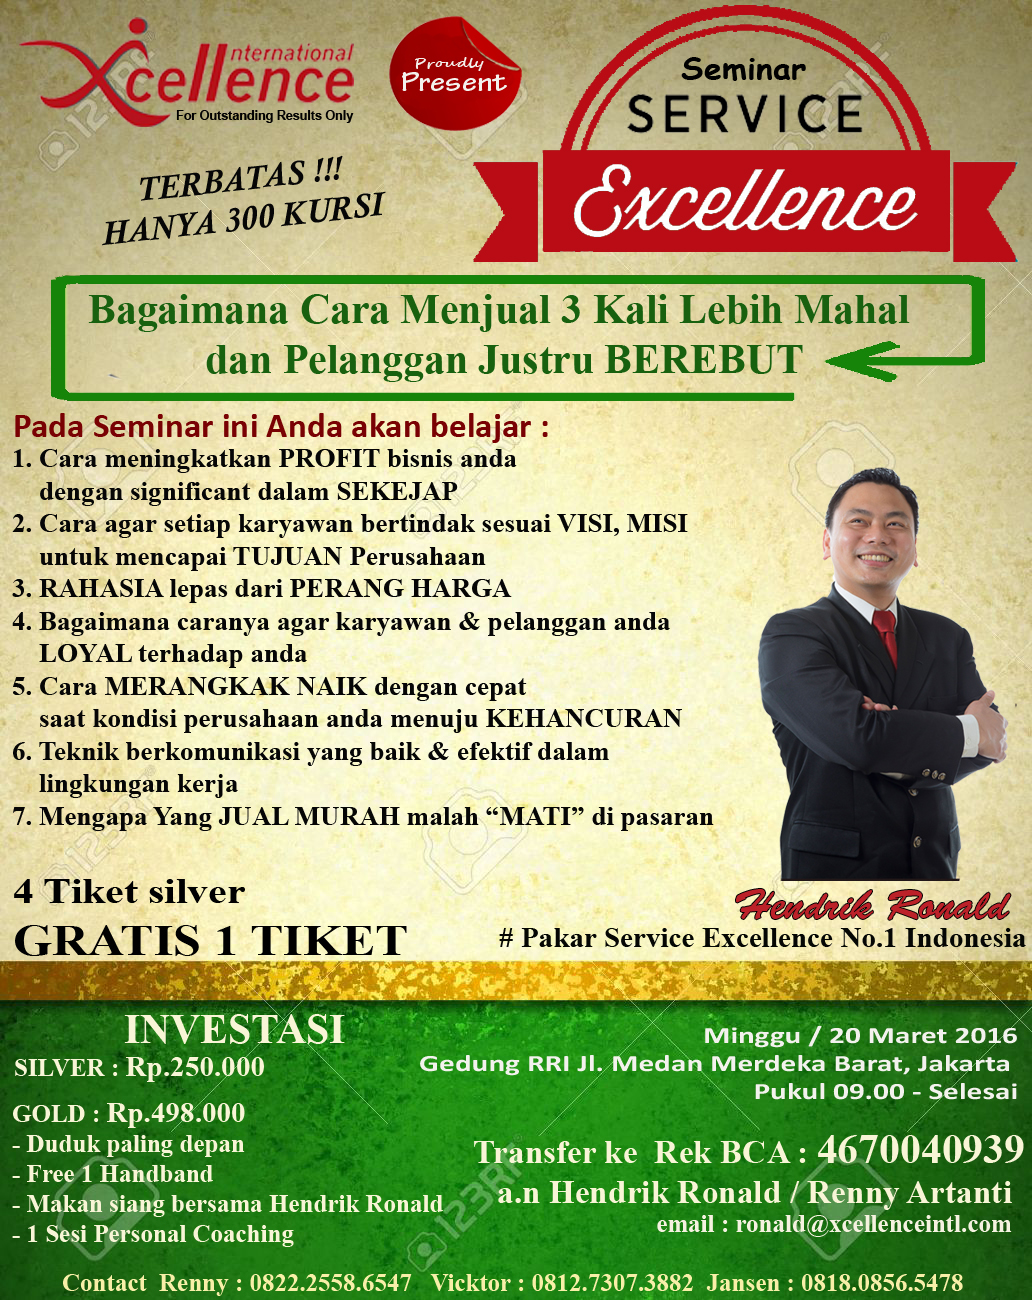 Seminar Service Excellence by Hendrik Ronald